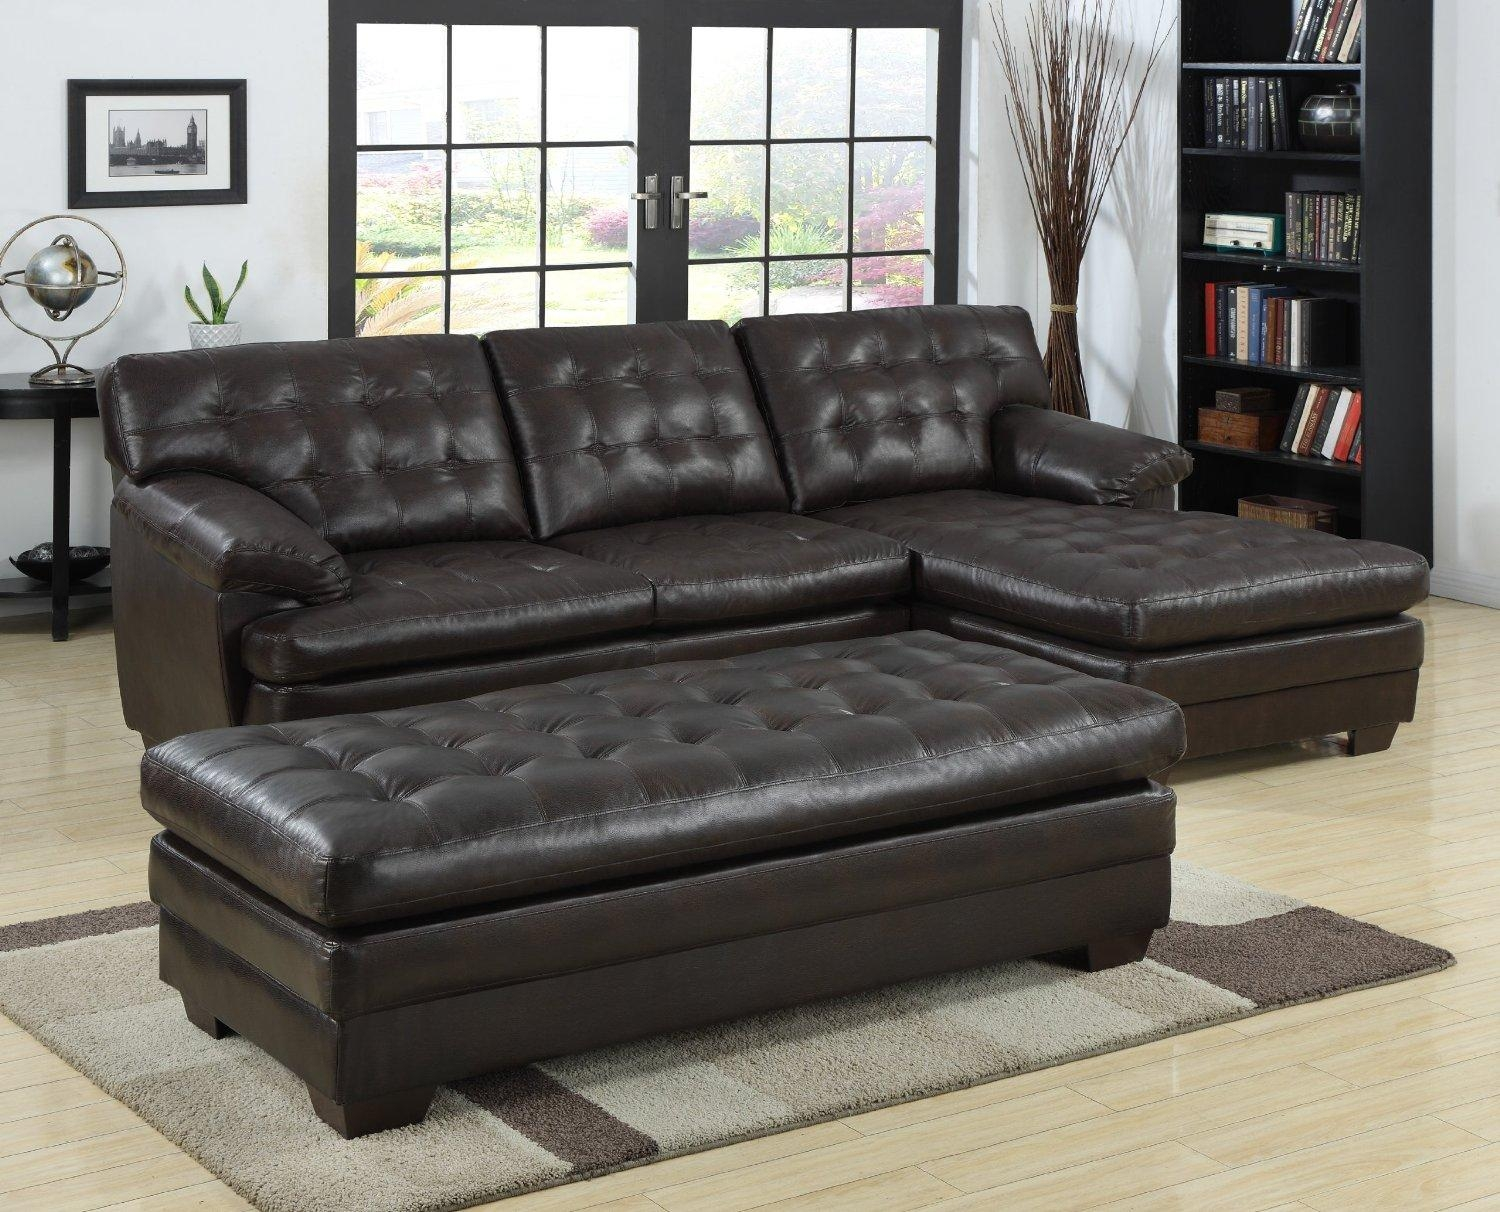 Emejing Living Room Chaise Lounge Chairs Contemporary (View 4 of 20)